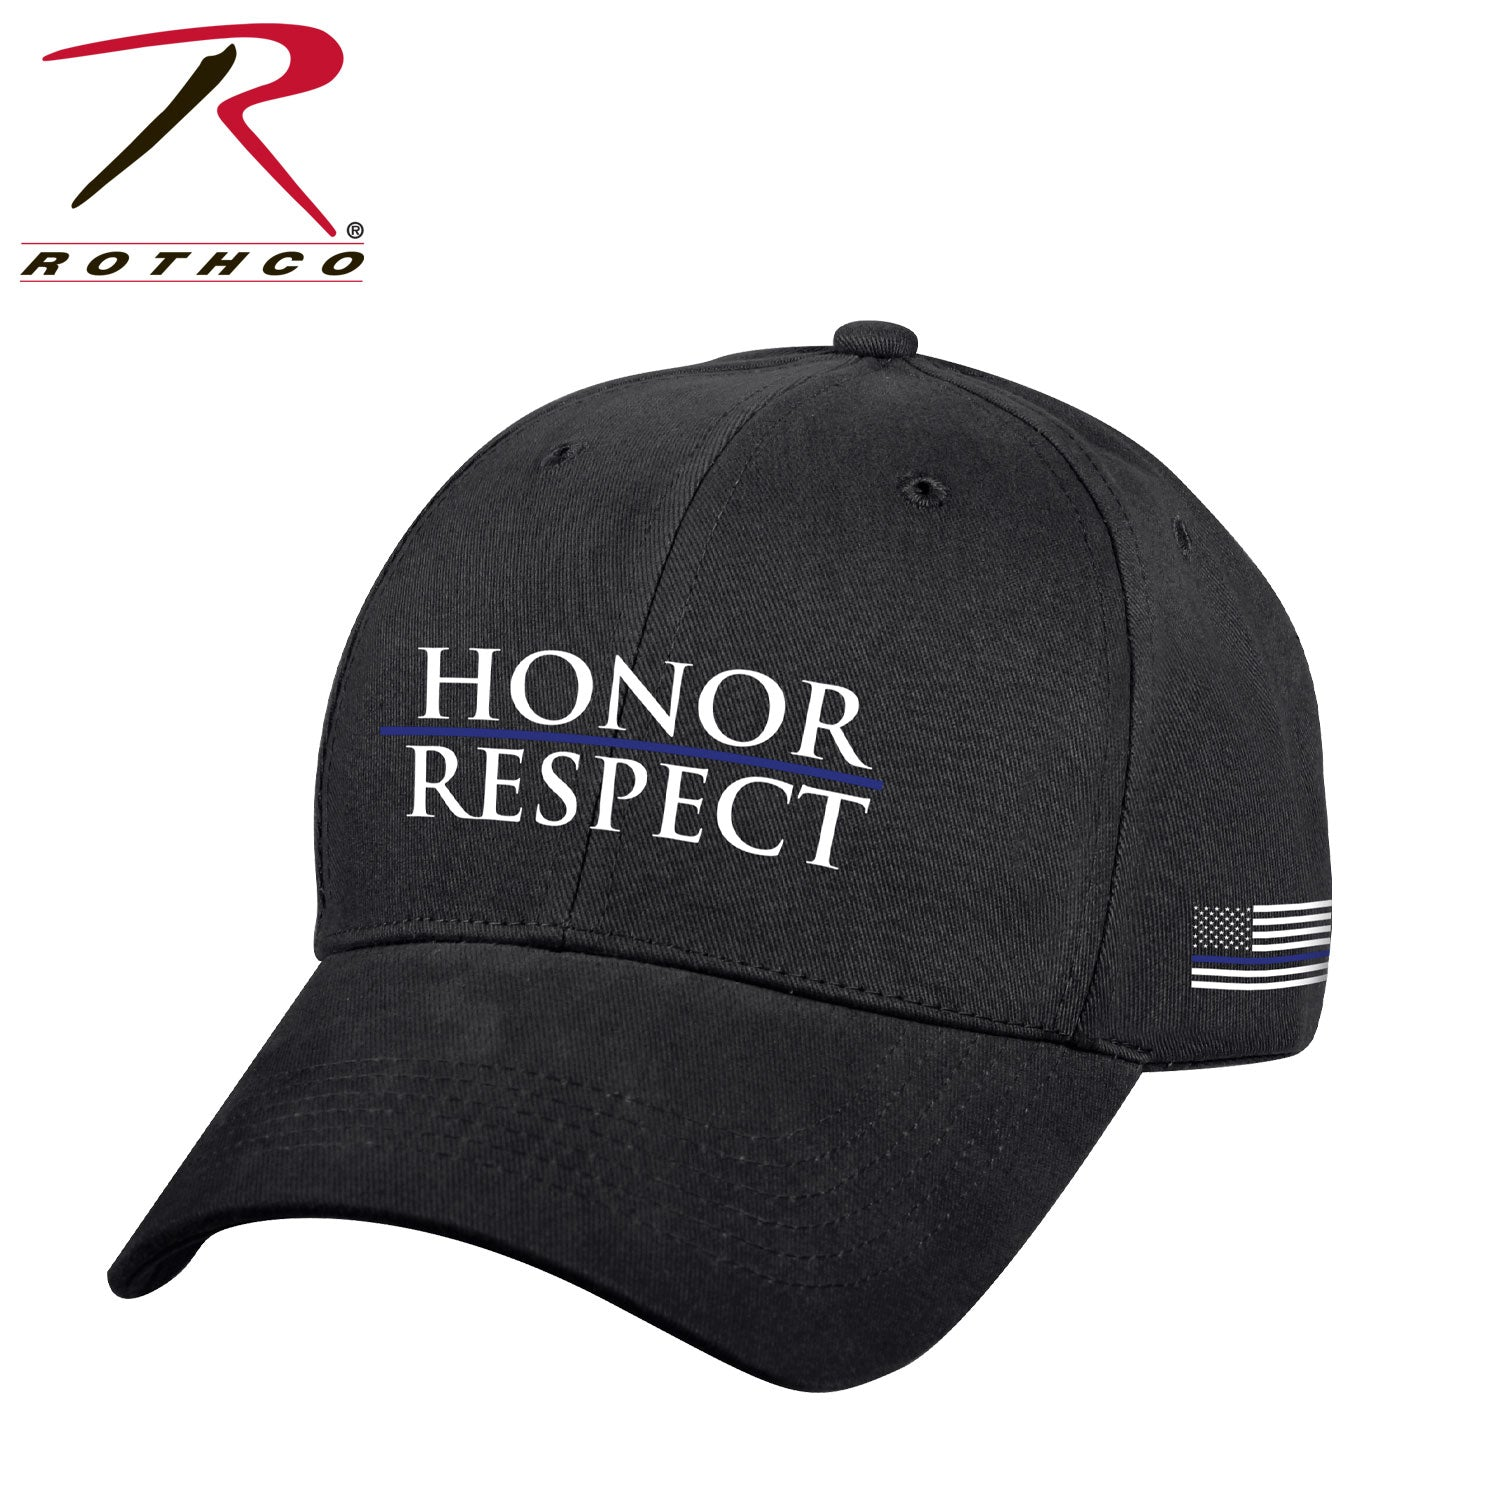 Rothco Honor and Respect Thin Blue Line Low Profile Cap